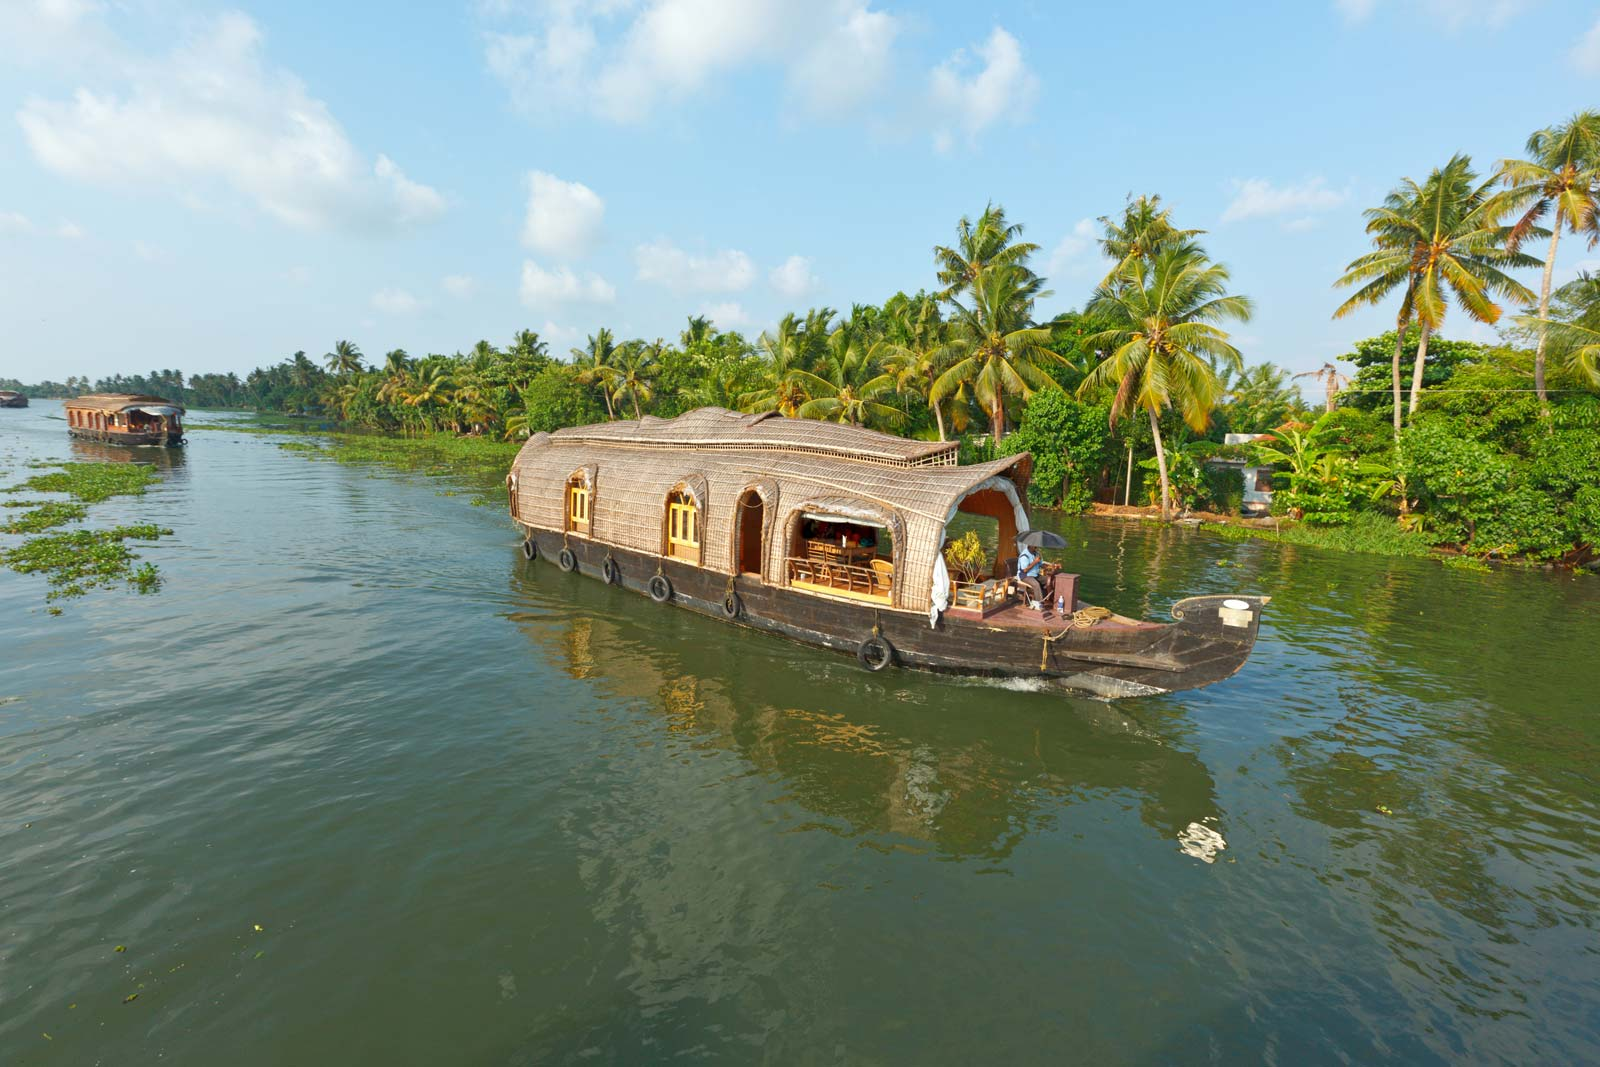 What makes Alleppey one of the best backwater destinations in Kerala?